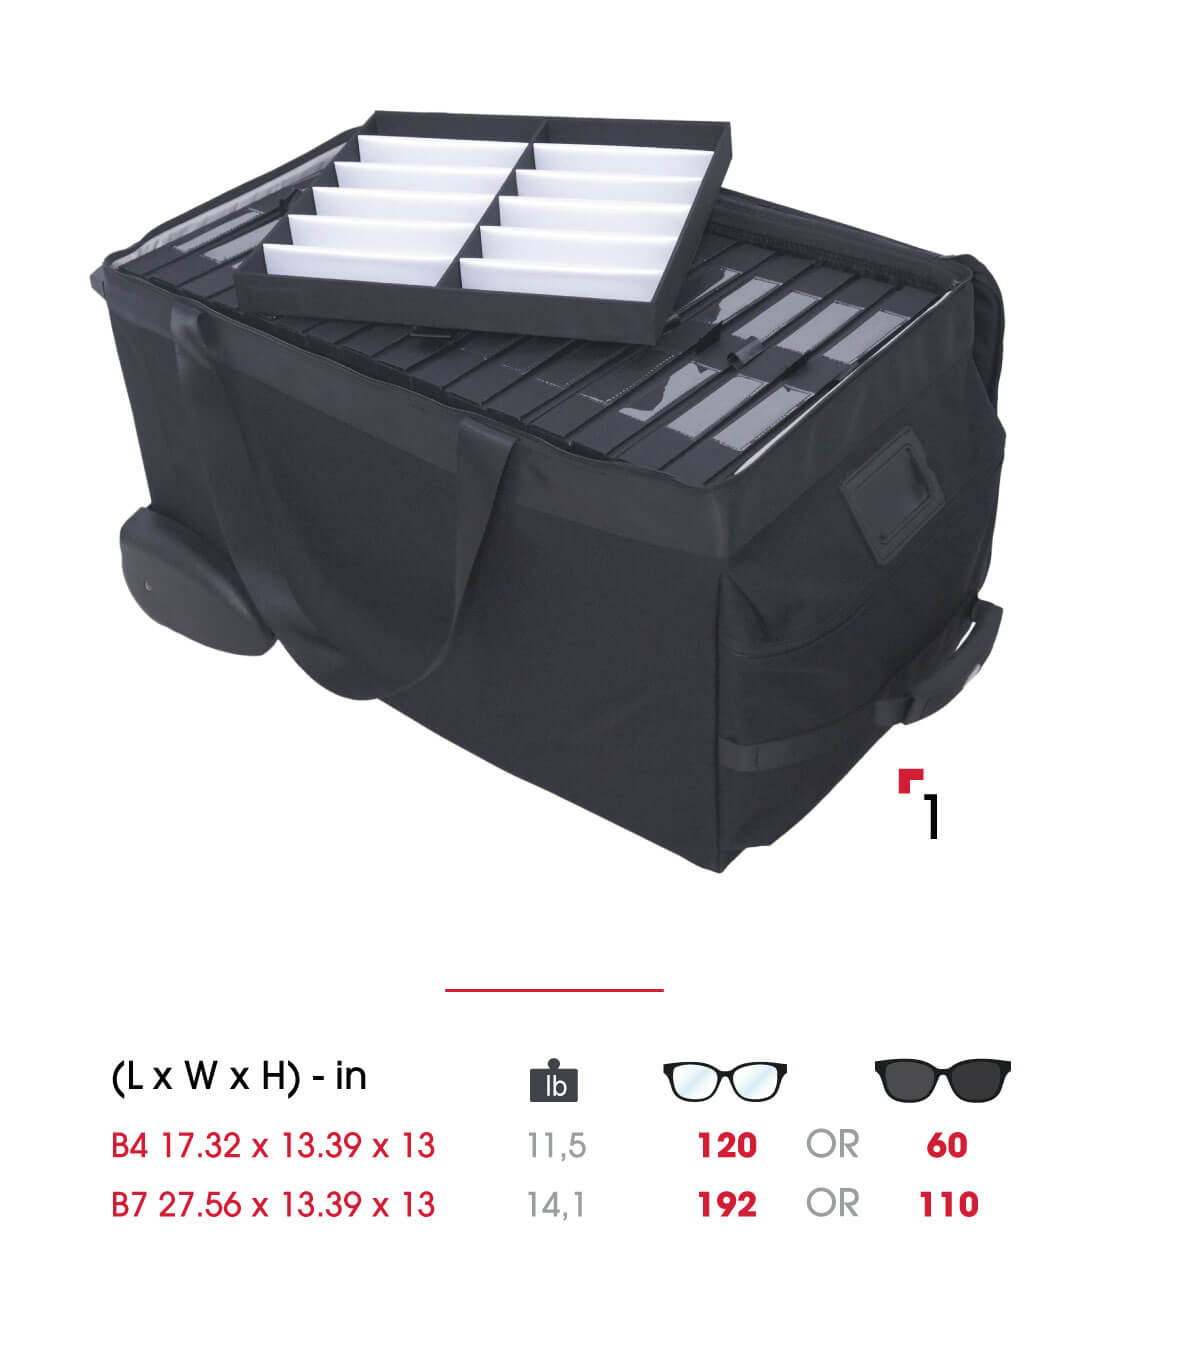 Eyewear bag with optical trays